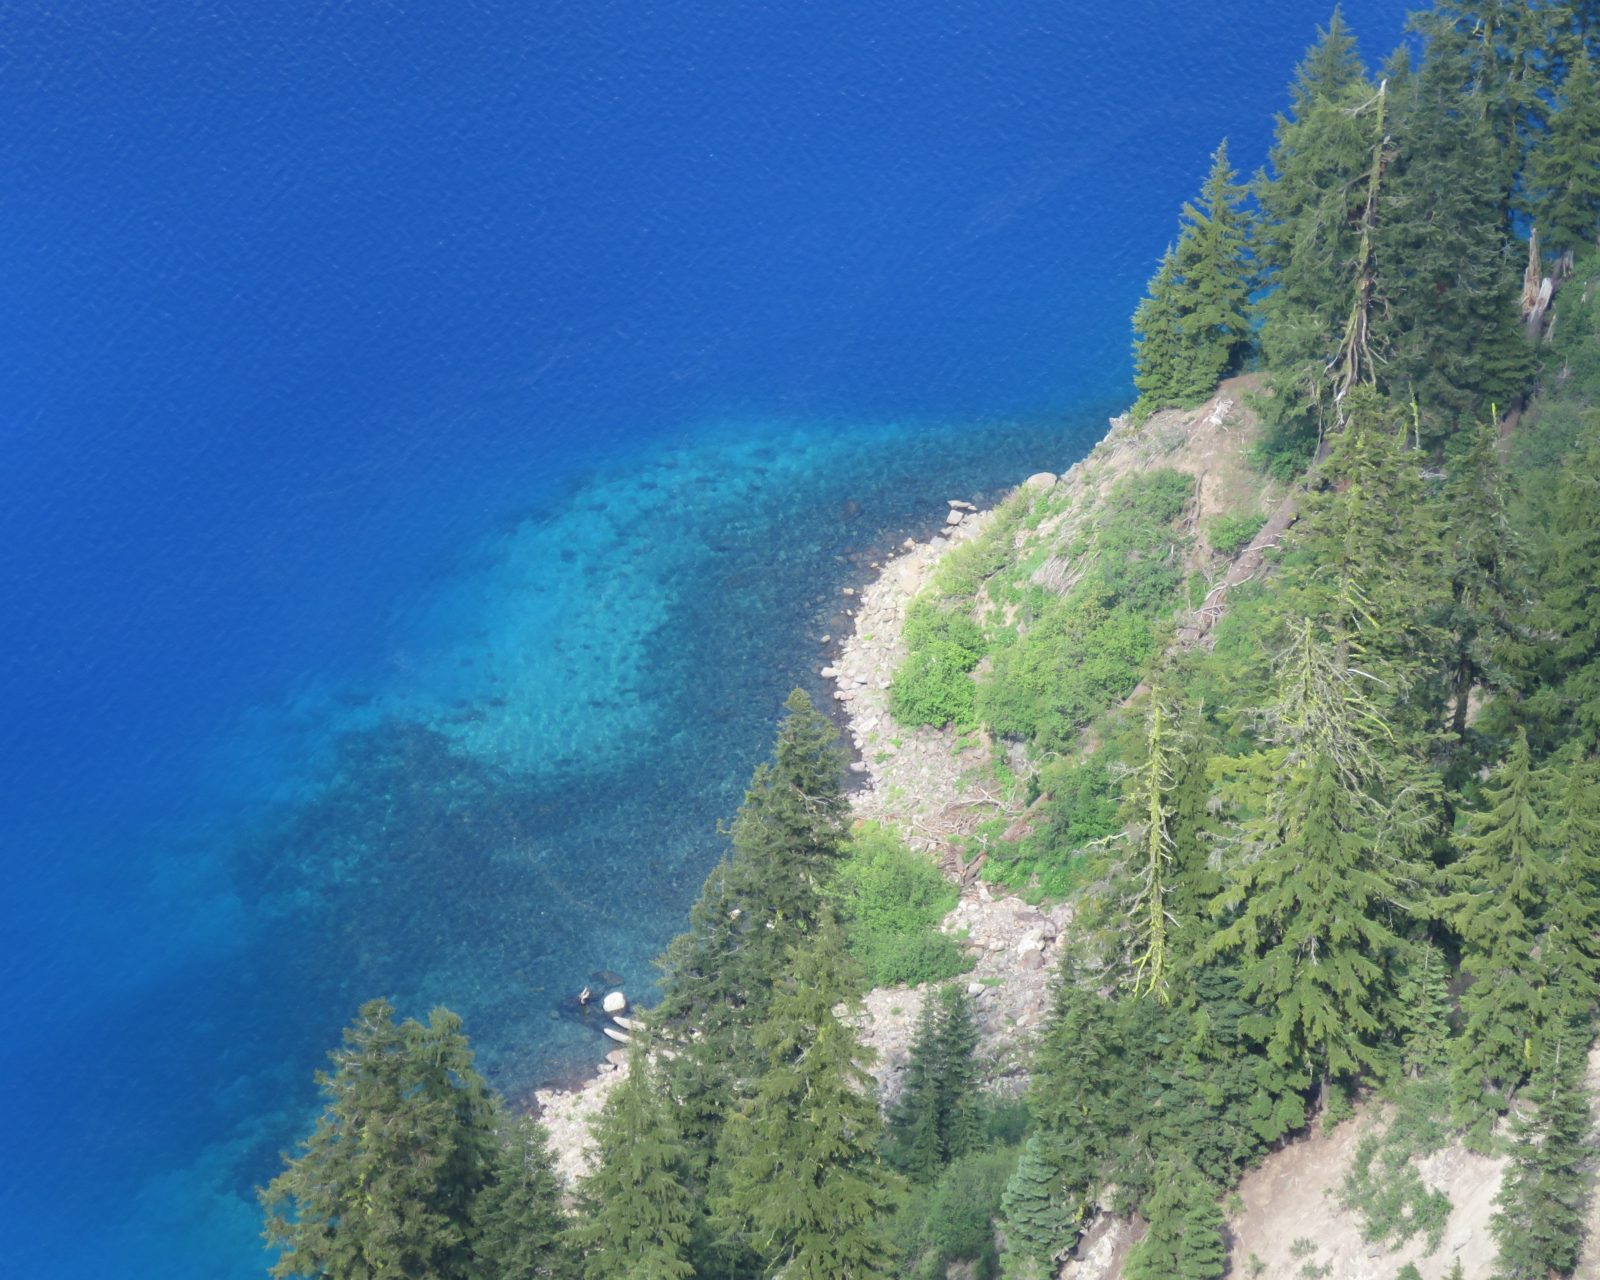 Crater Lake Shore Detail